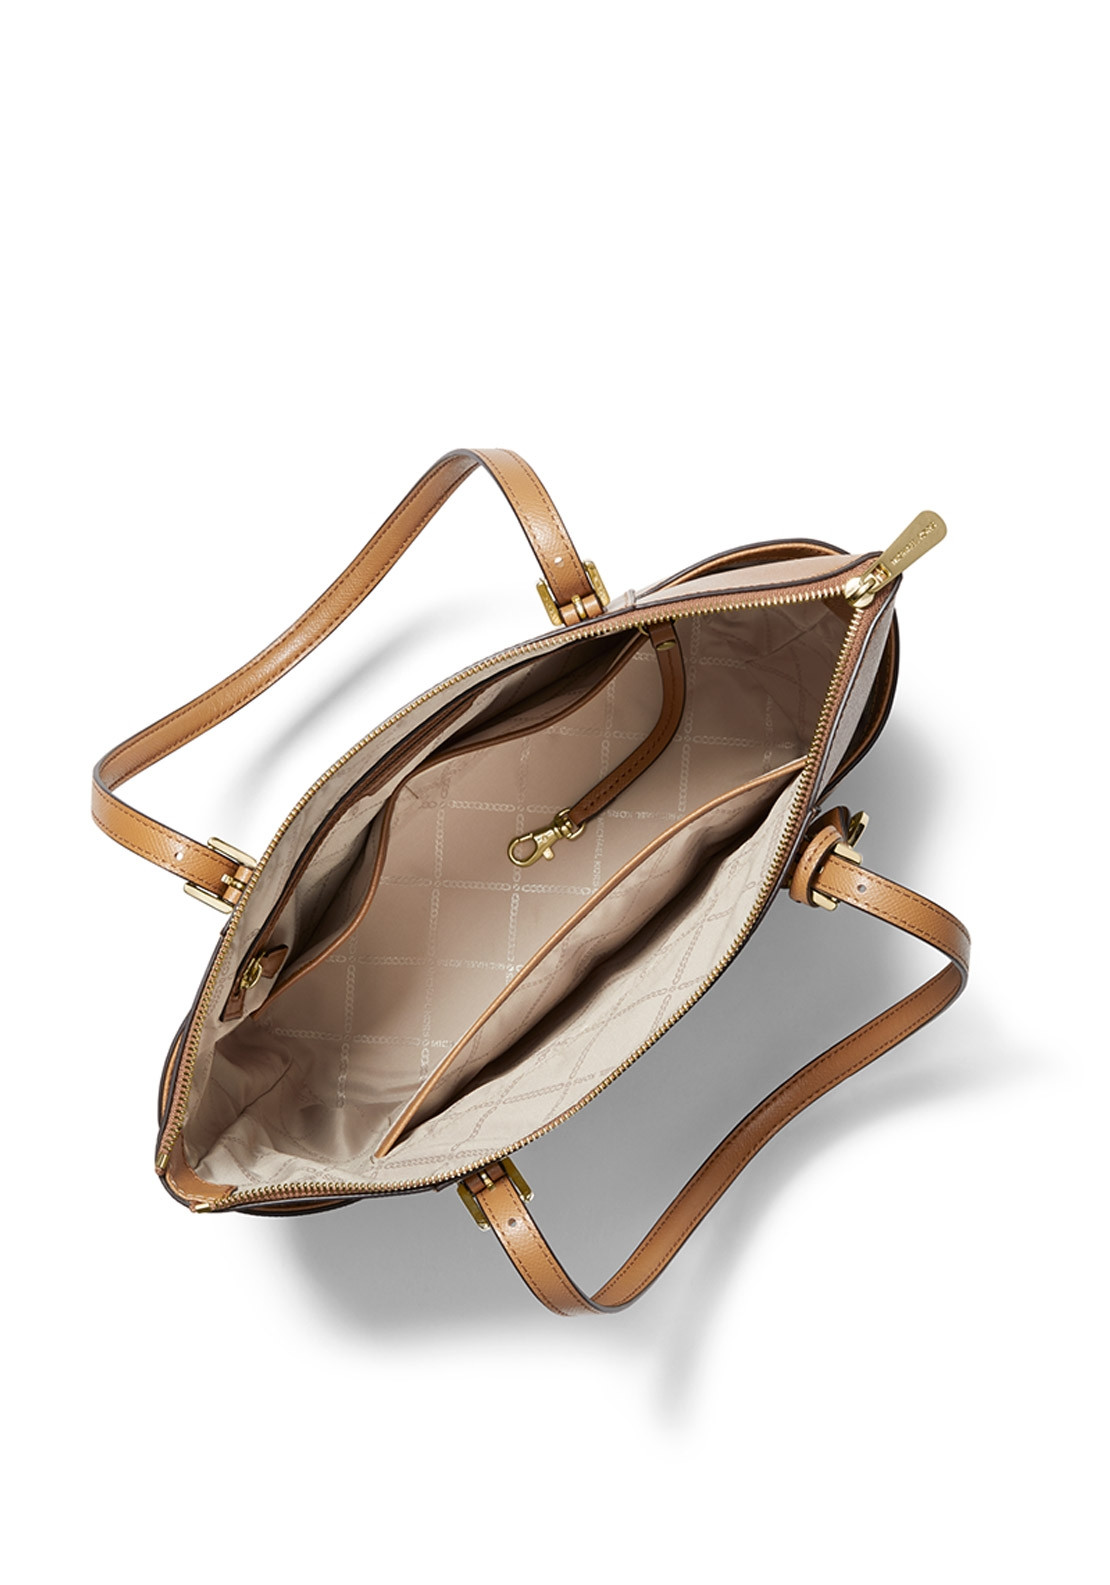 c6ae0c2fdbd5e1 MICHAEL Michael Kors Jet Set Leather Tote Bag, Acorn. Be the first to  review this product